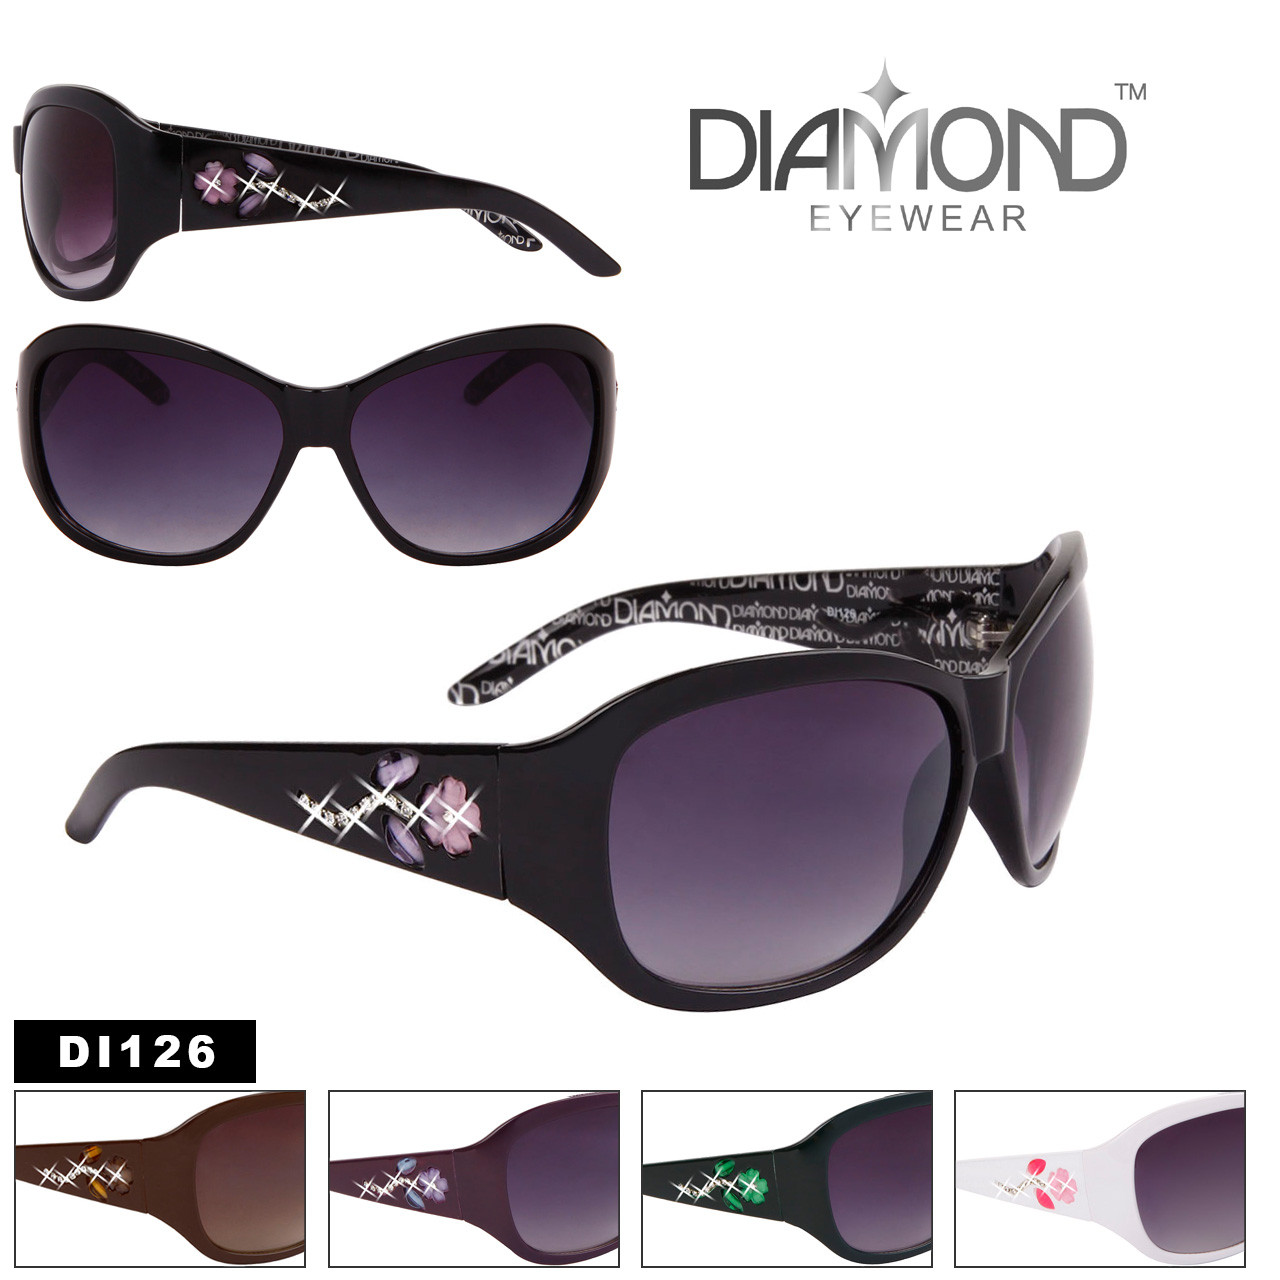 Rhinestone Flower Temple Fashion Sunglasses - Style #DI126